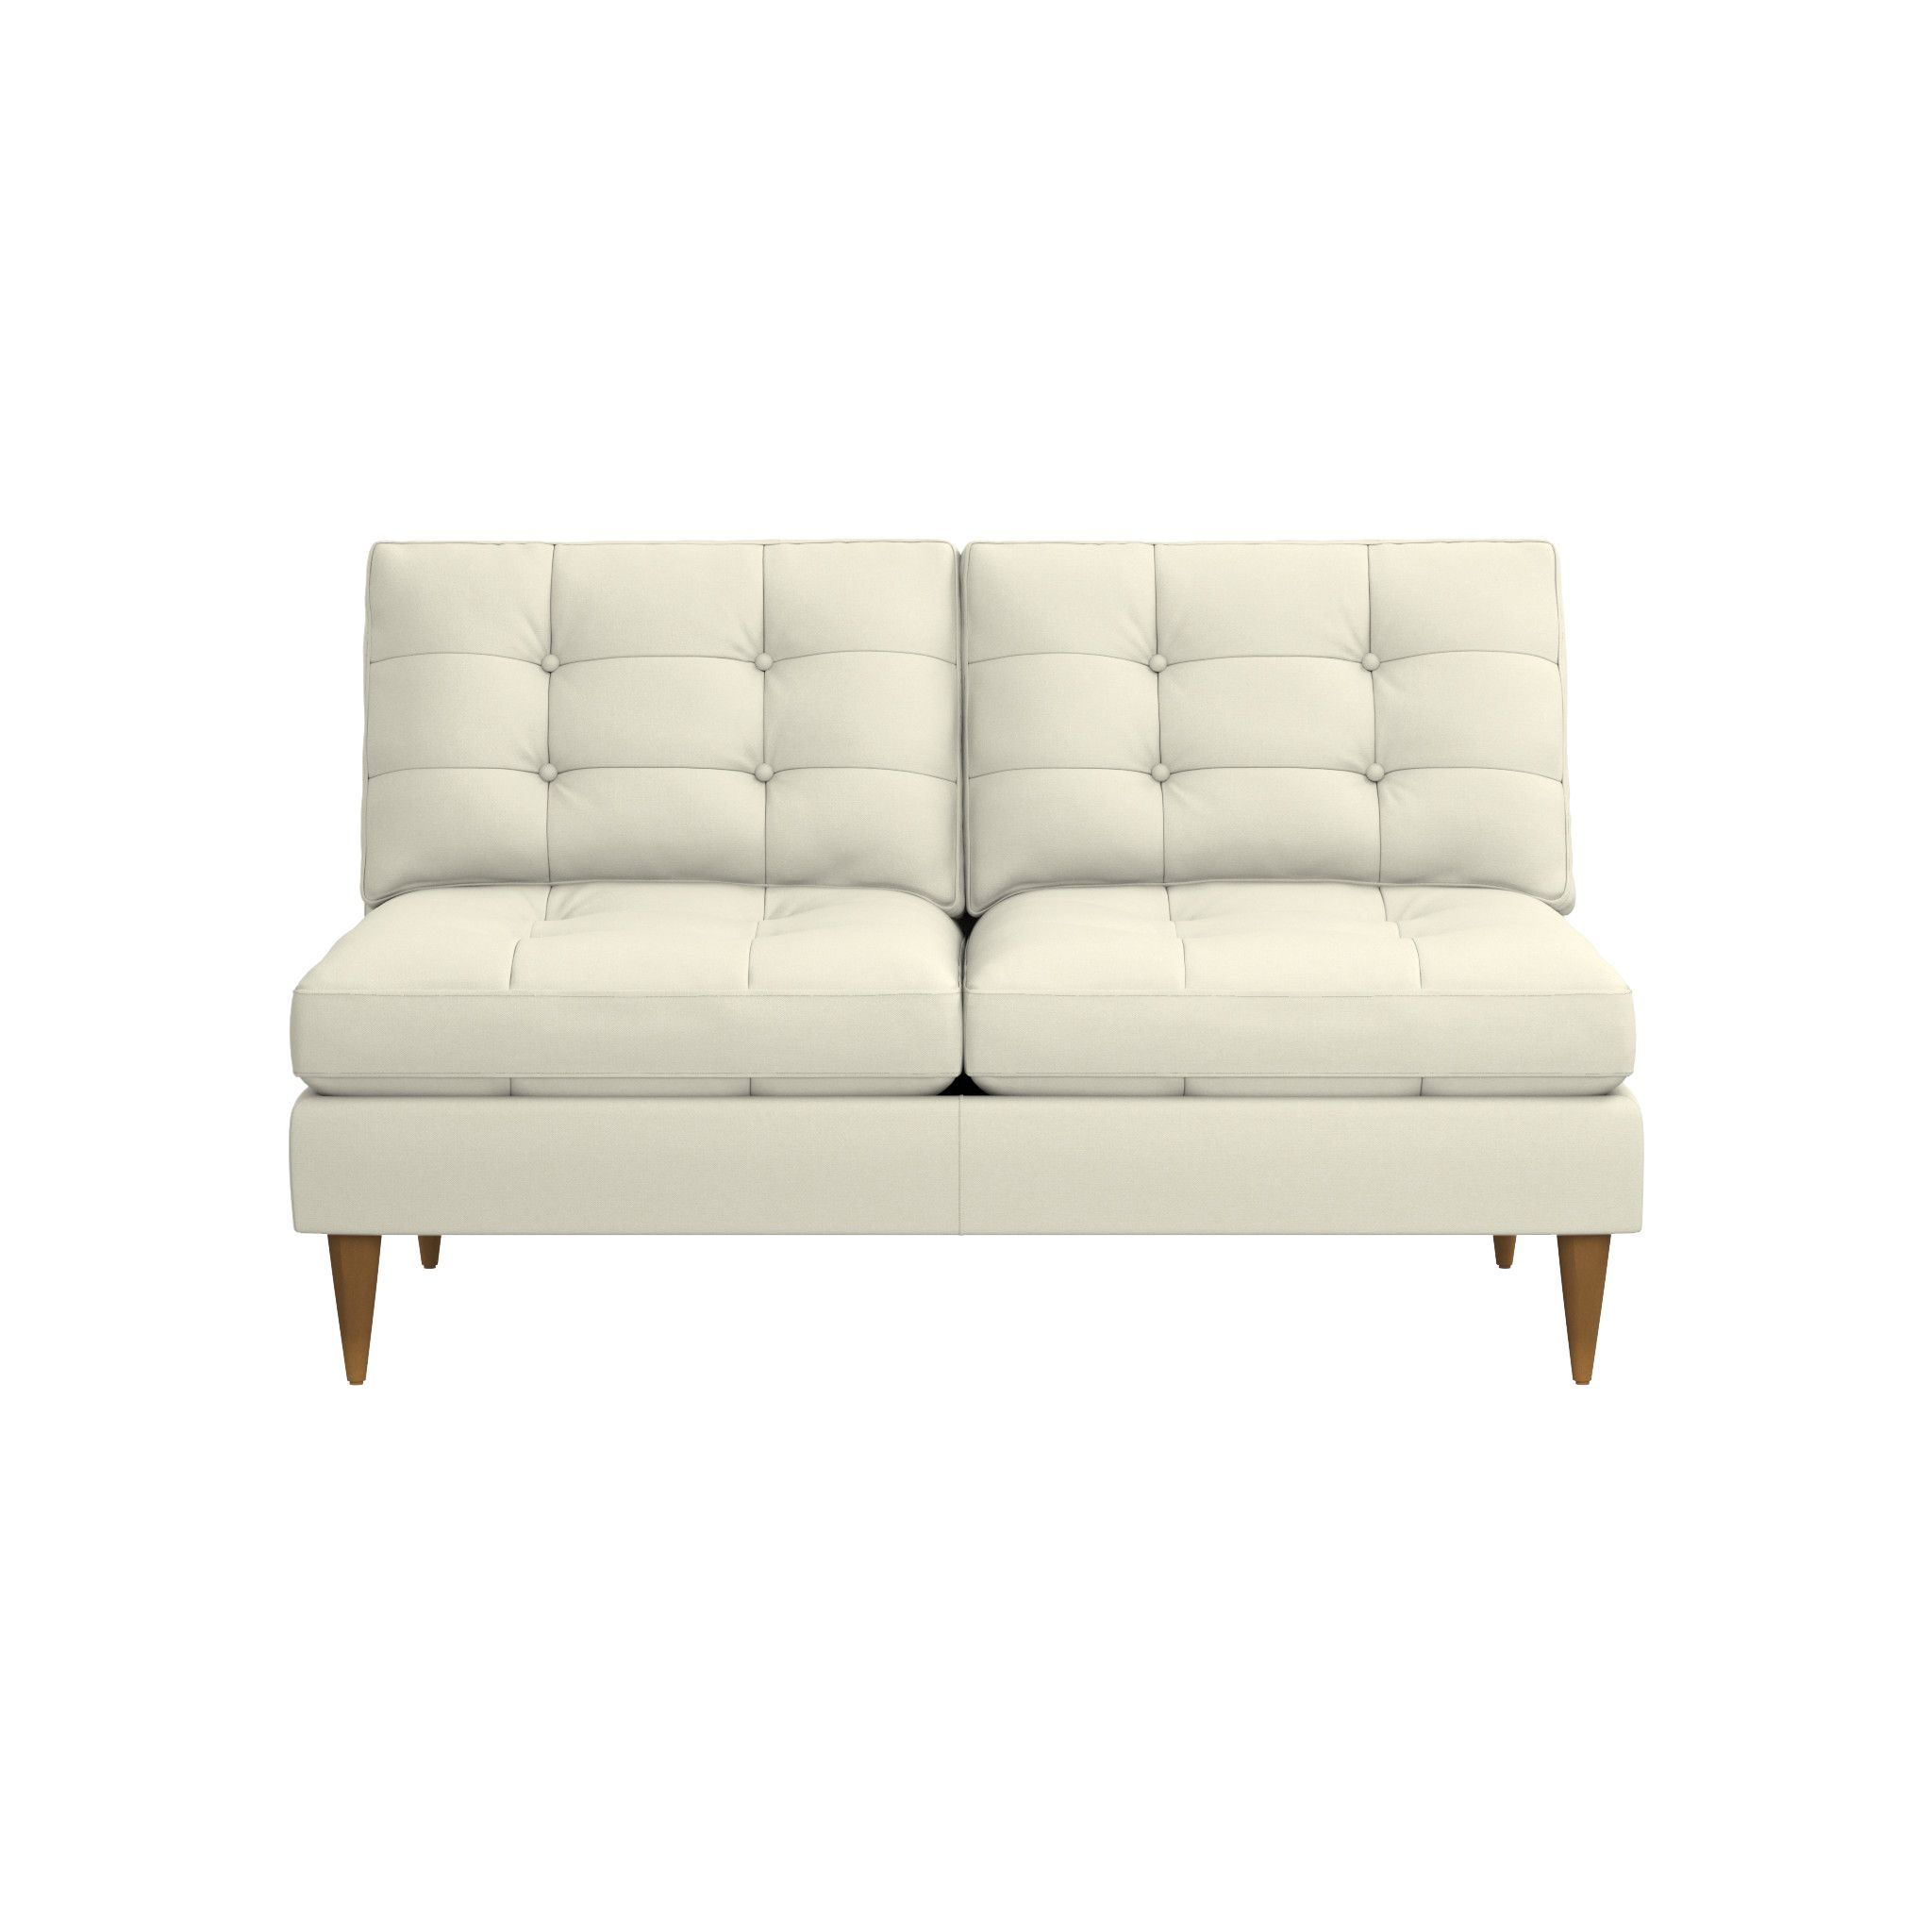 Petrie Midcentury Armless Loveseat Reviews Crate And Barrel